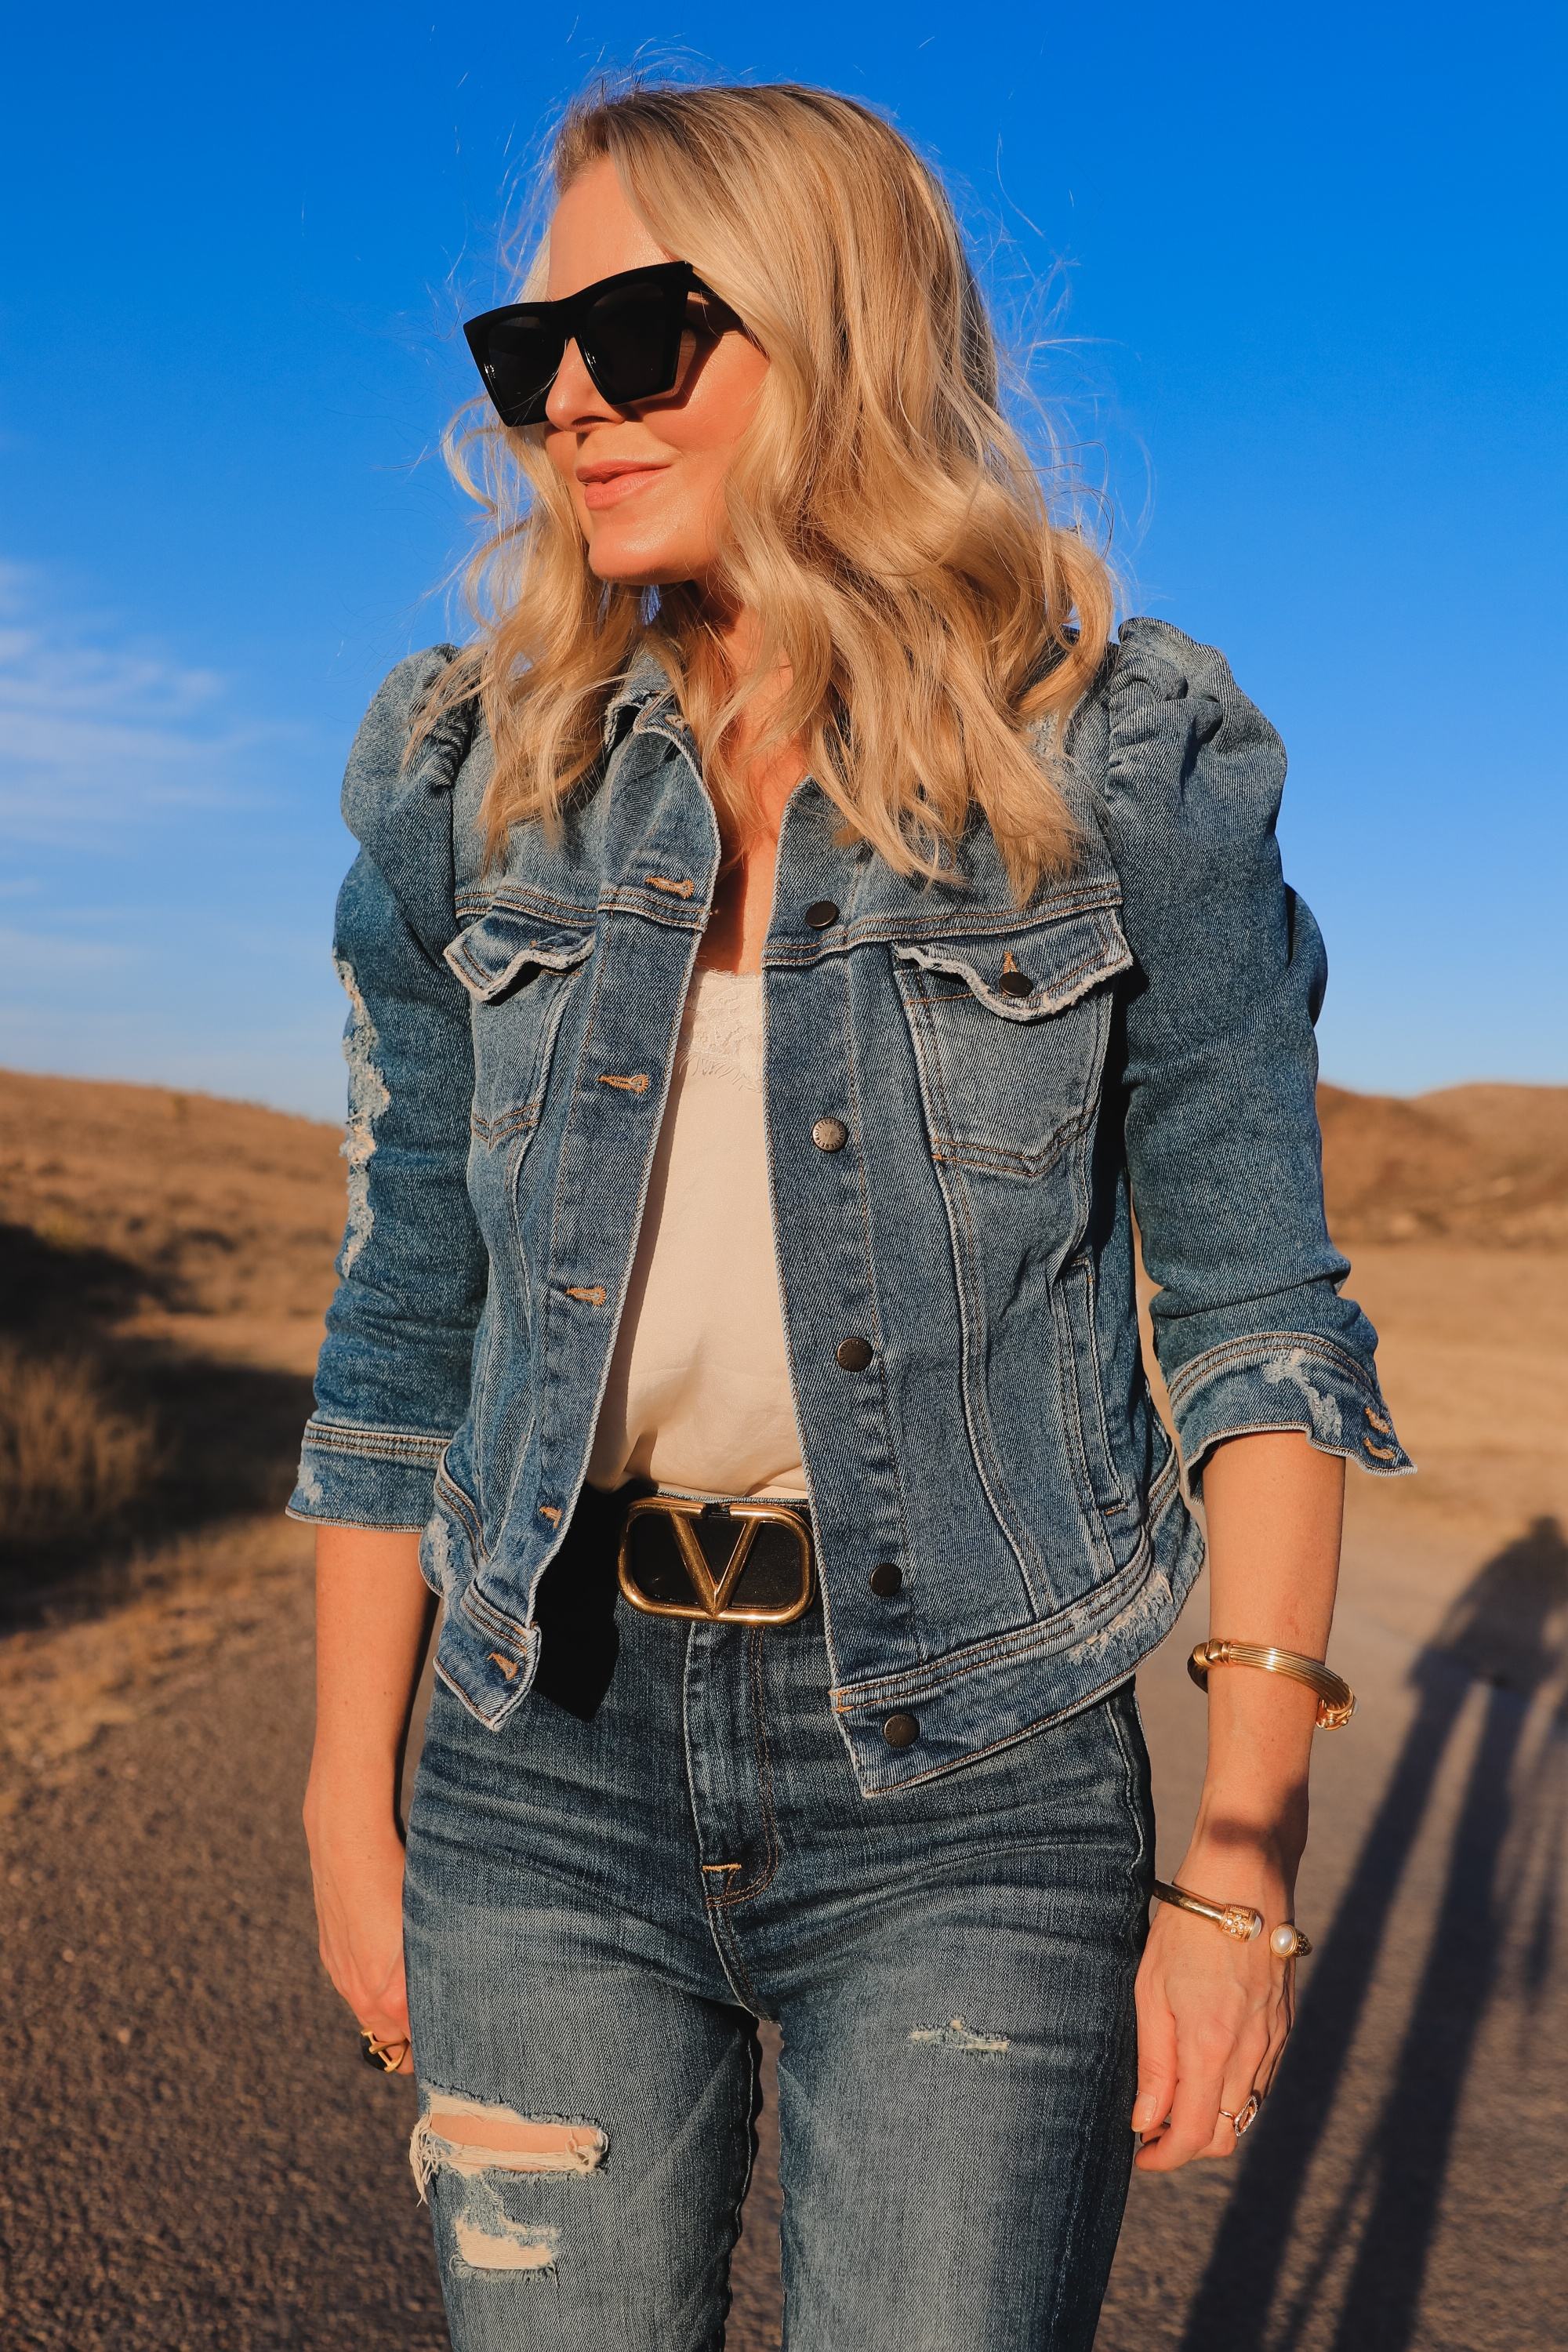 How To Wear Denim on Denim, Erin Busbee of Busbee wearing a distressed puff sleeve denim jacket by Retrofete, 7 For All Mankind distressed jeans, black Alexander Wang cutout booties, white B.P. lace cami, black cat eye sunglasses, and Julie Vos gold cuff bracelets in West Texas